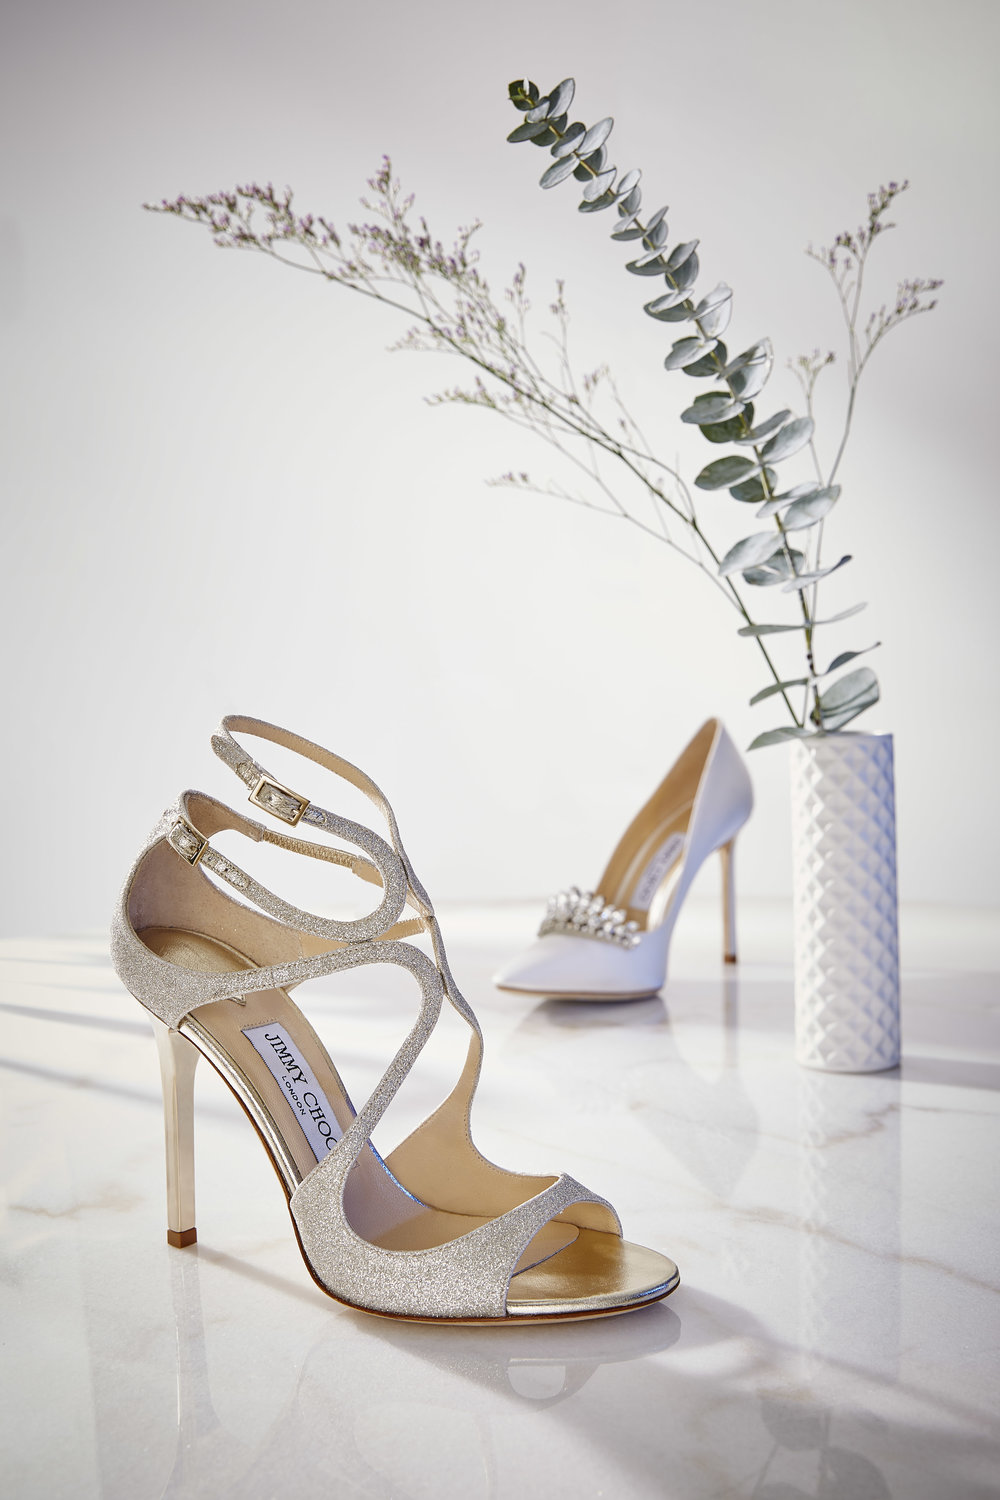 jimmy_choo_edit_02_a_24215 1.jpg